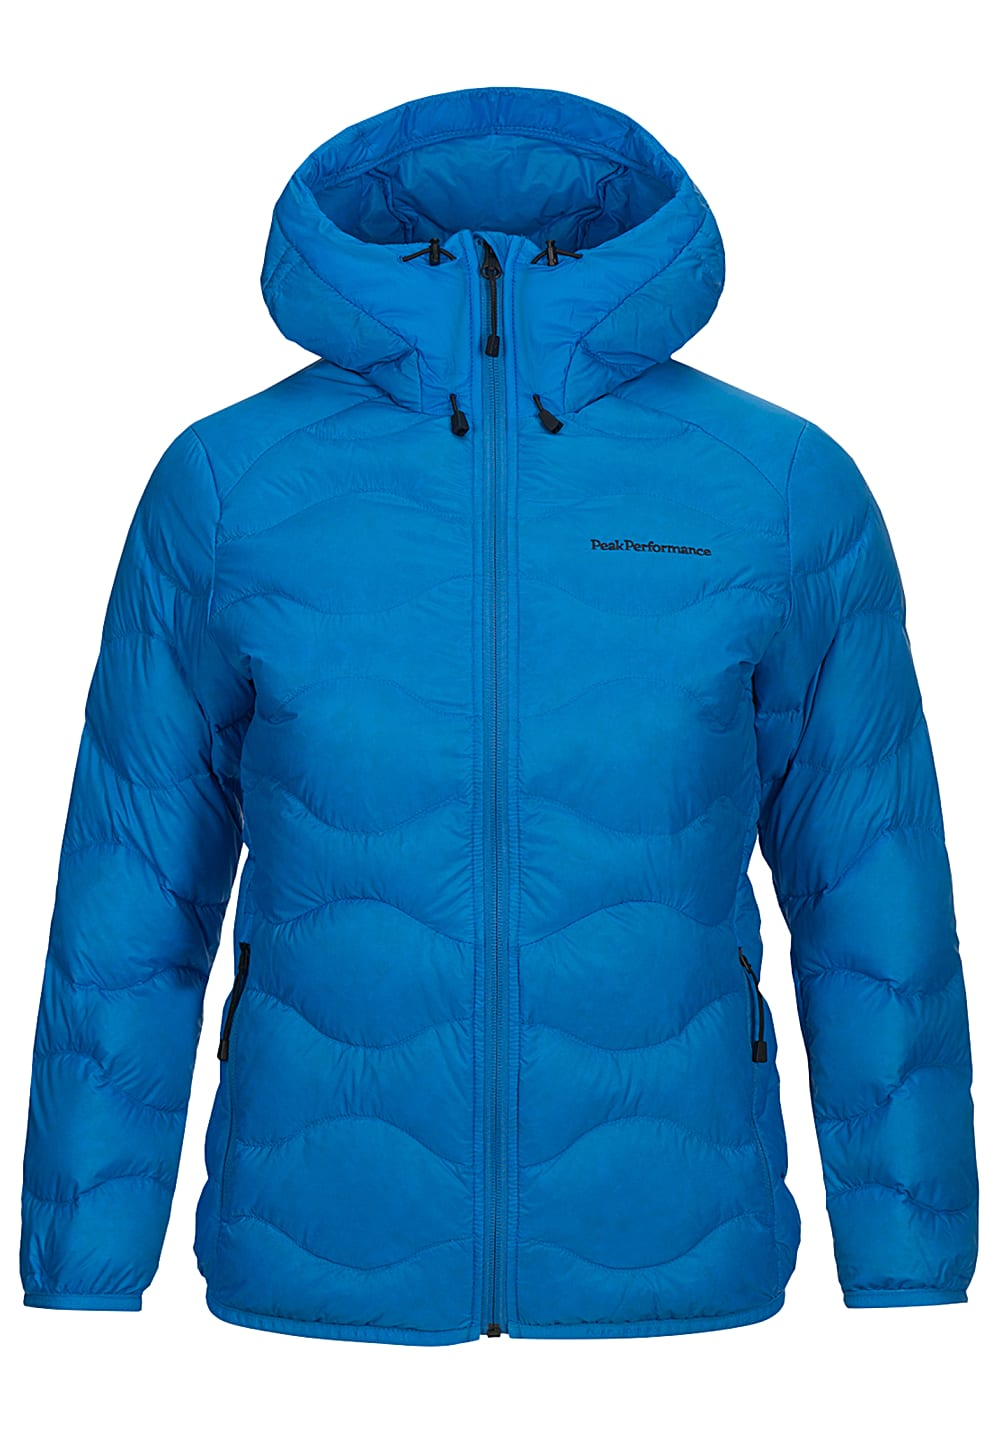 PEAK PERFORMANCE Helium Outdoorjacke für Damen Blau